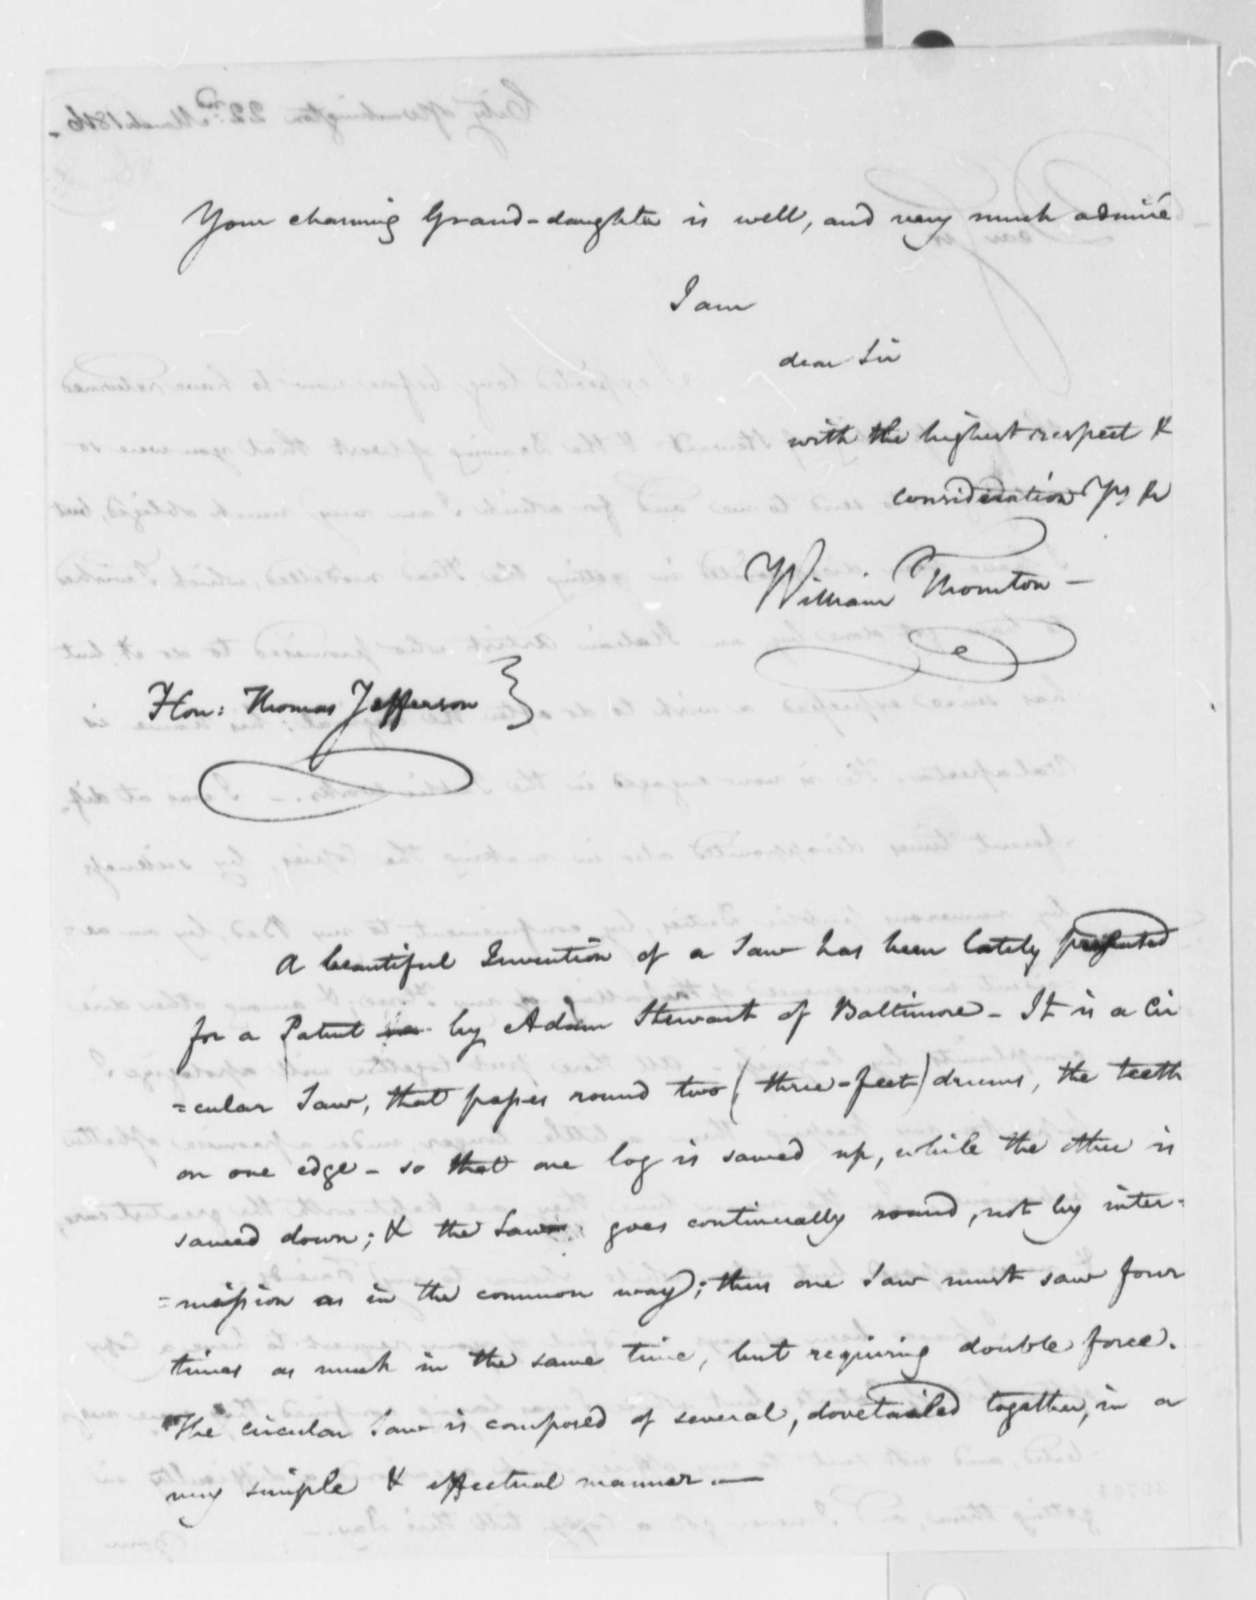 William Thornton to Thomas Jefferson, March 22, 1816, with Drawing